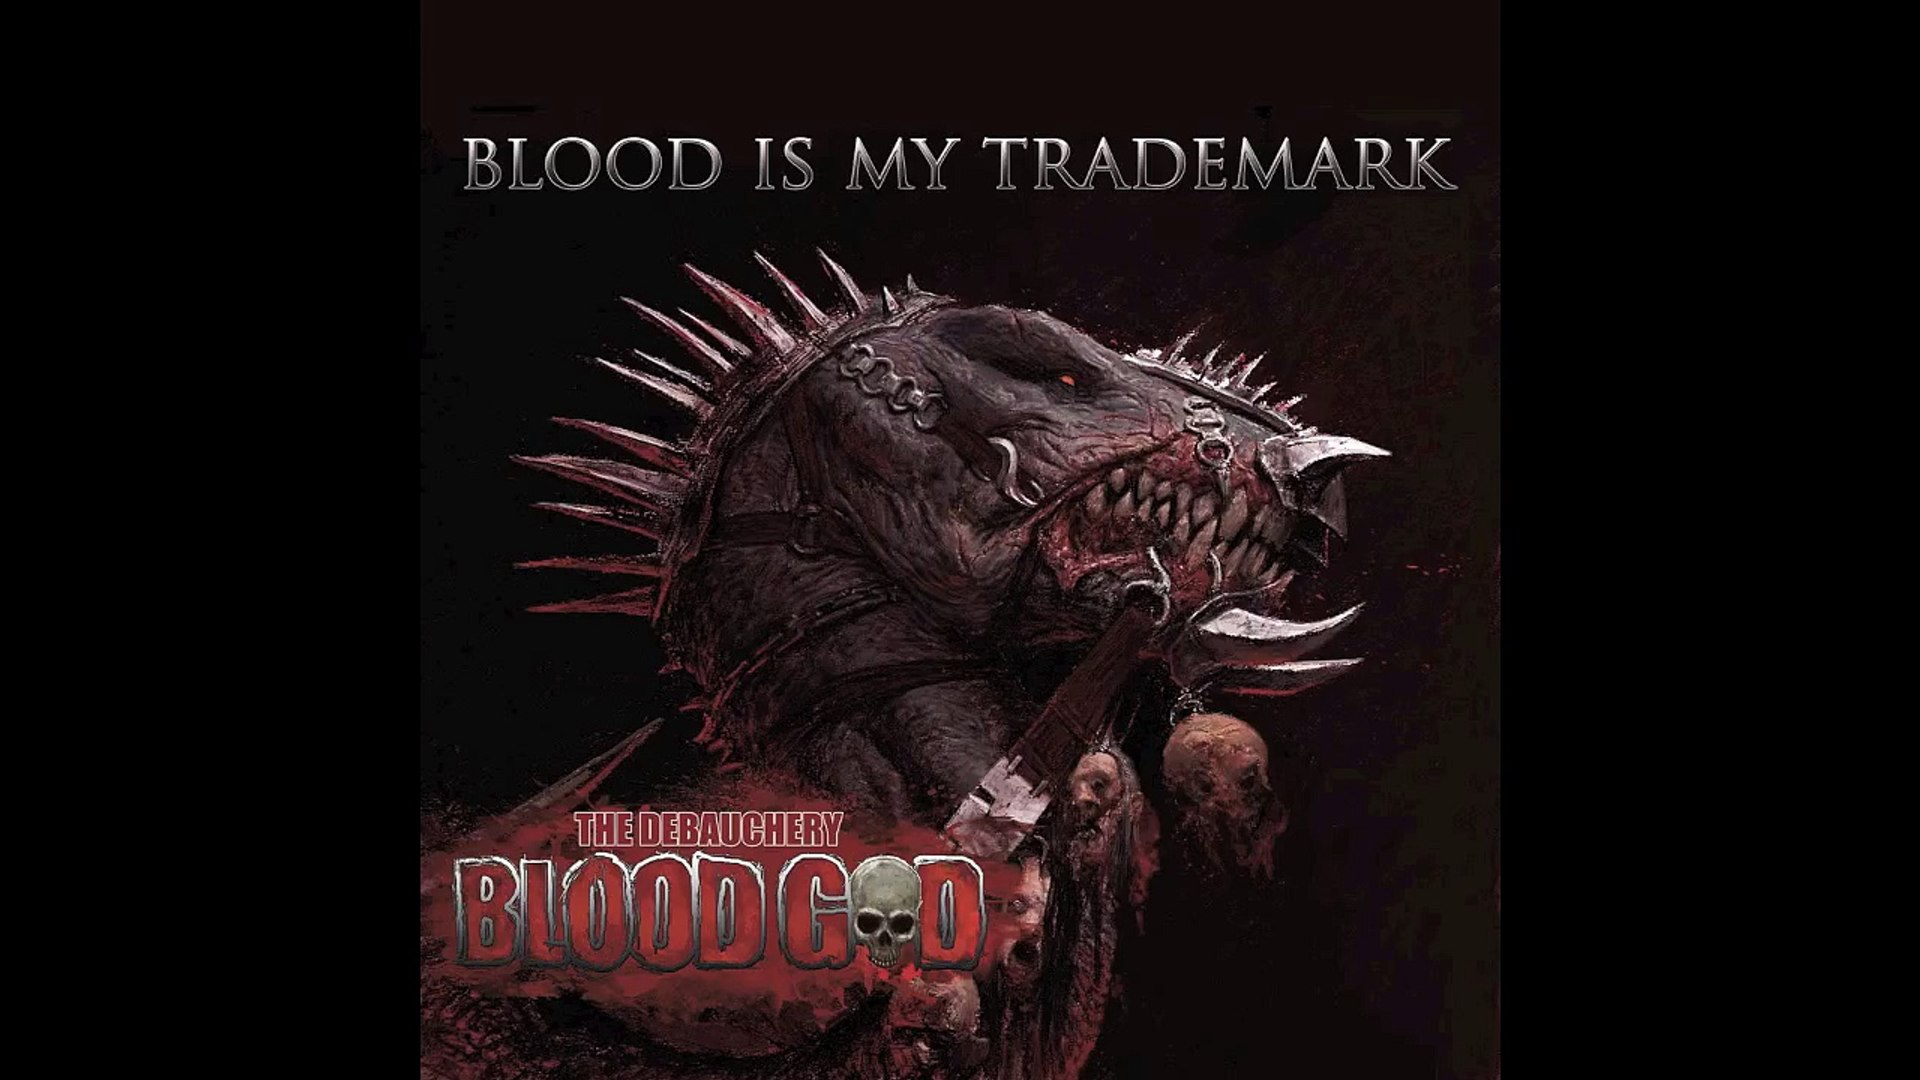 3. BLOOD GOD - DEFENDERS OF THE THRONE OF FIRE (FROM THE ALBUM BLOOD IS MY TRADEMARK/BLOOD GOD 2014)